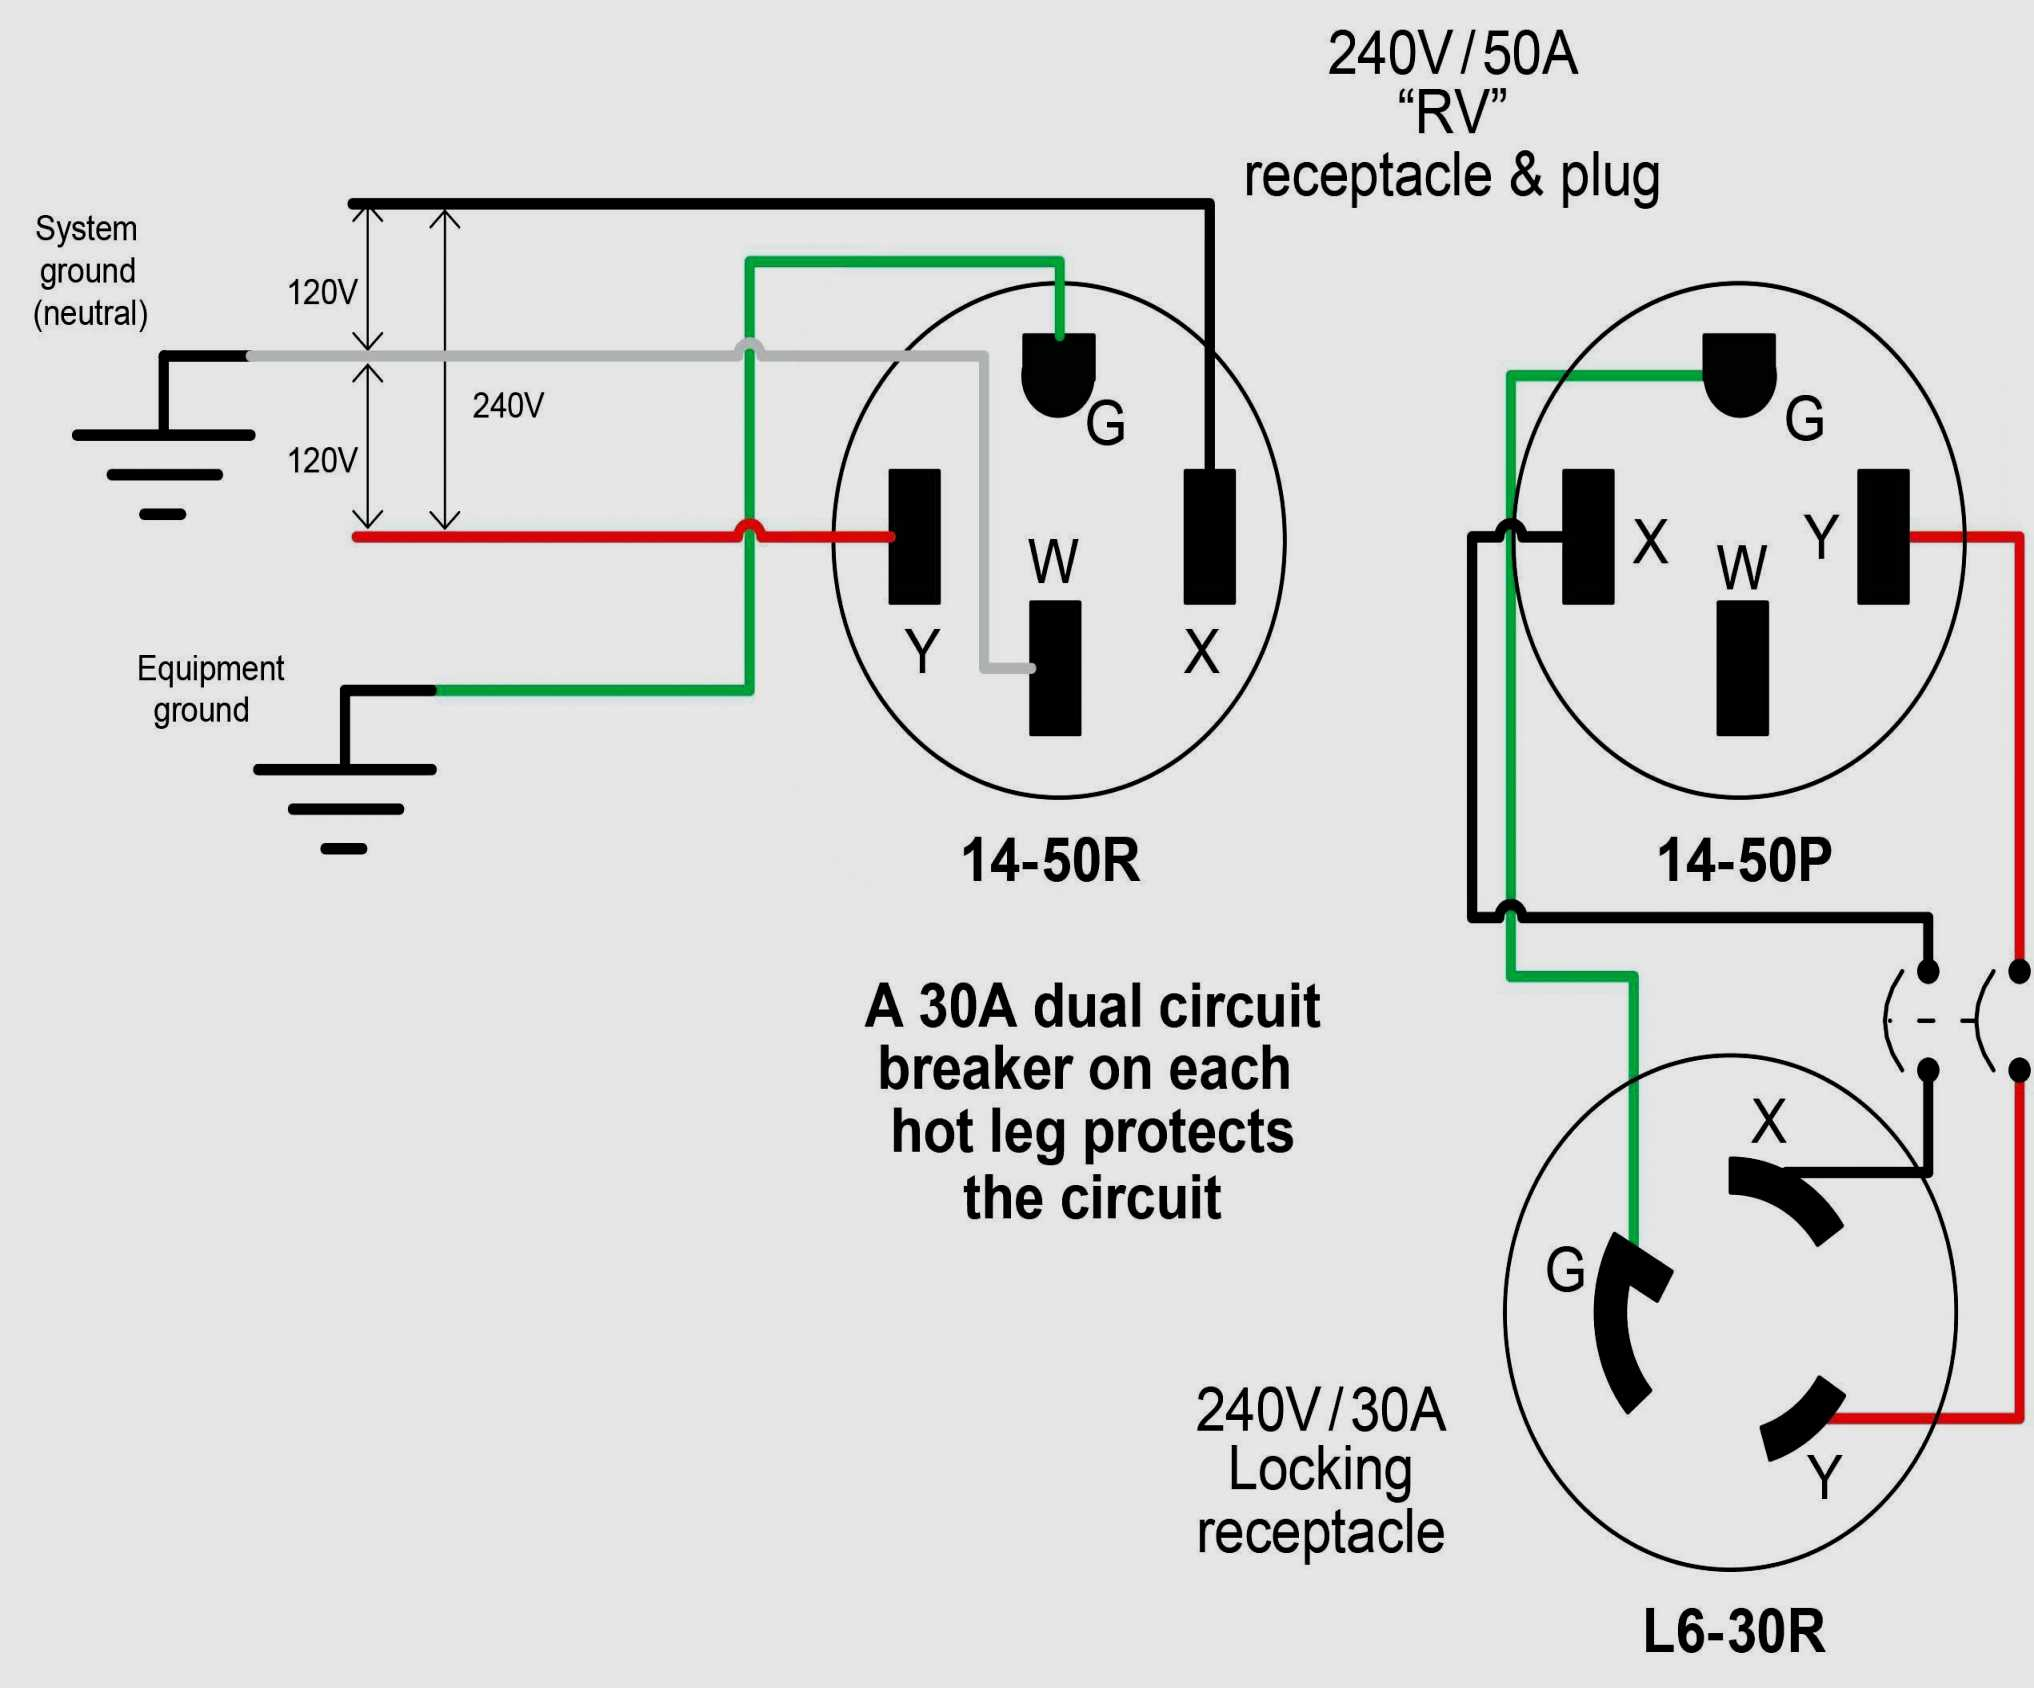 diagram] 480v to 240v single phase transformer wiring diagram full version  hd quality wiring diagram - teknixwiringservices.bccaltabrianza.it  bccaltabrianza